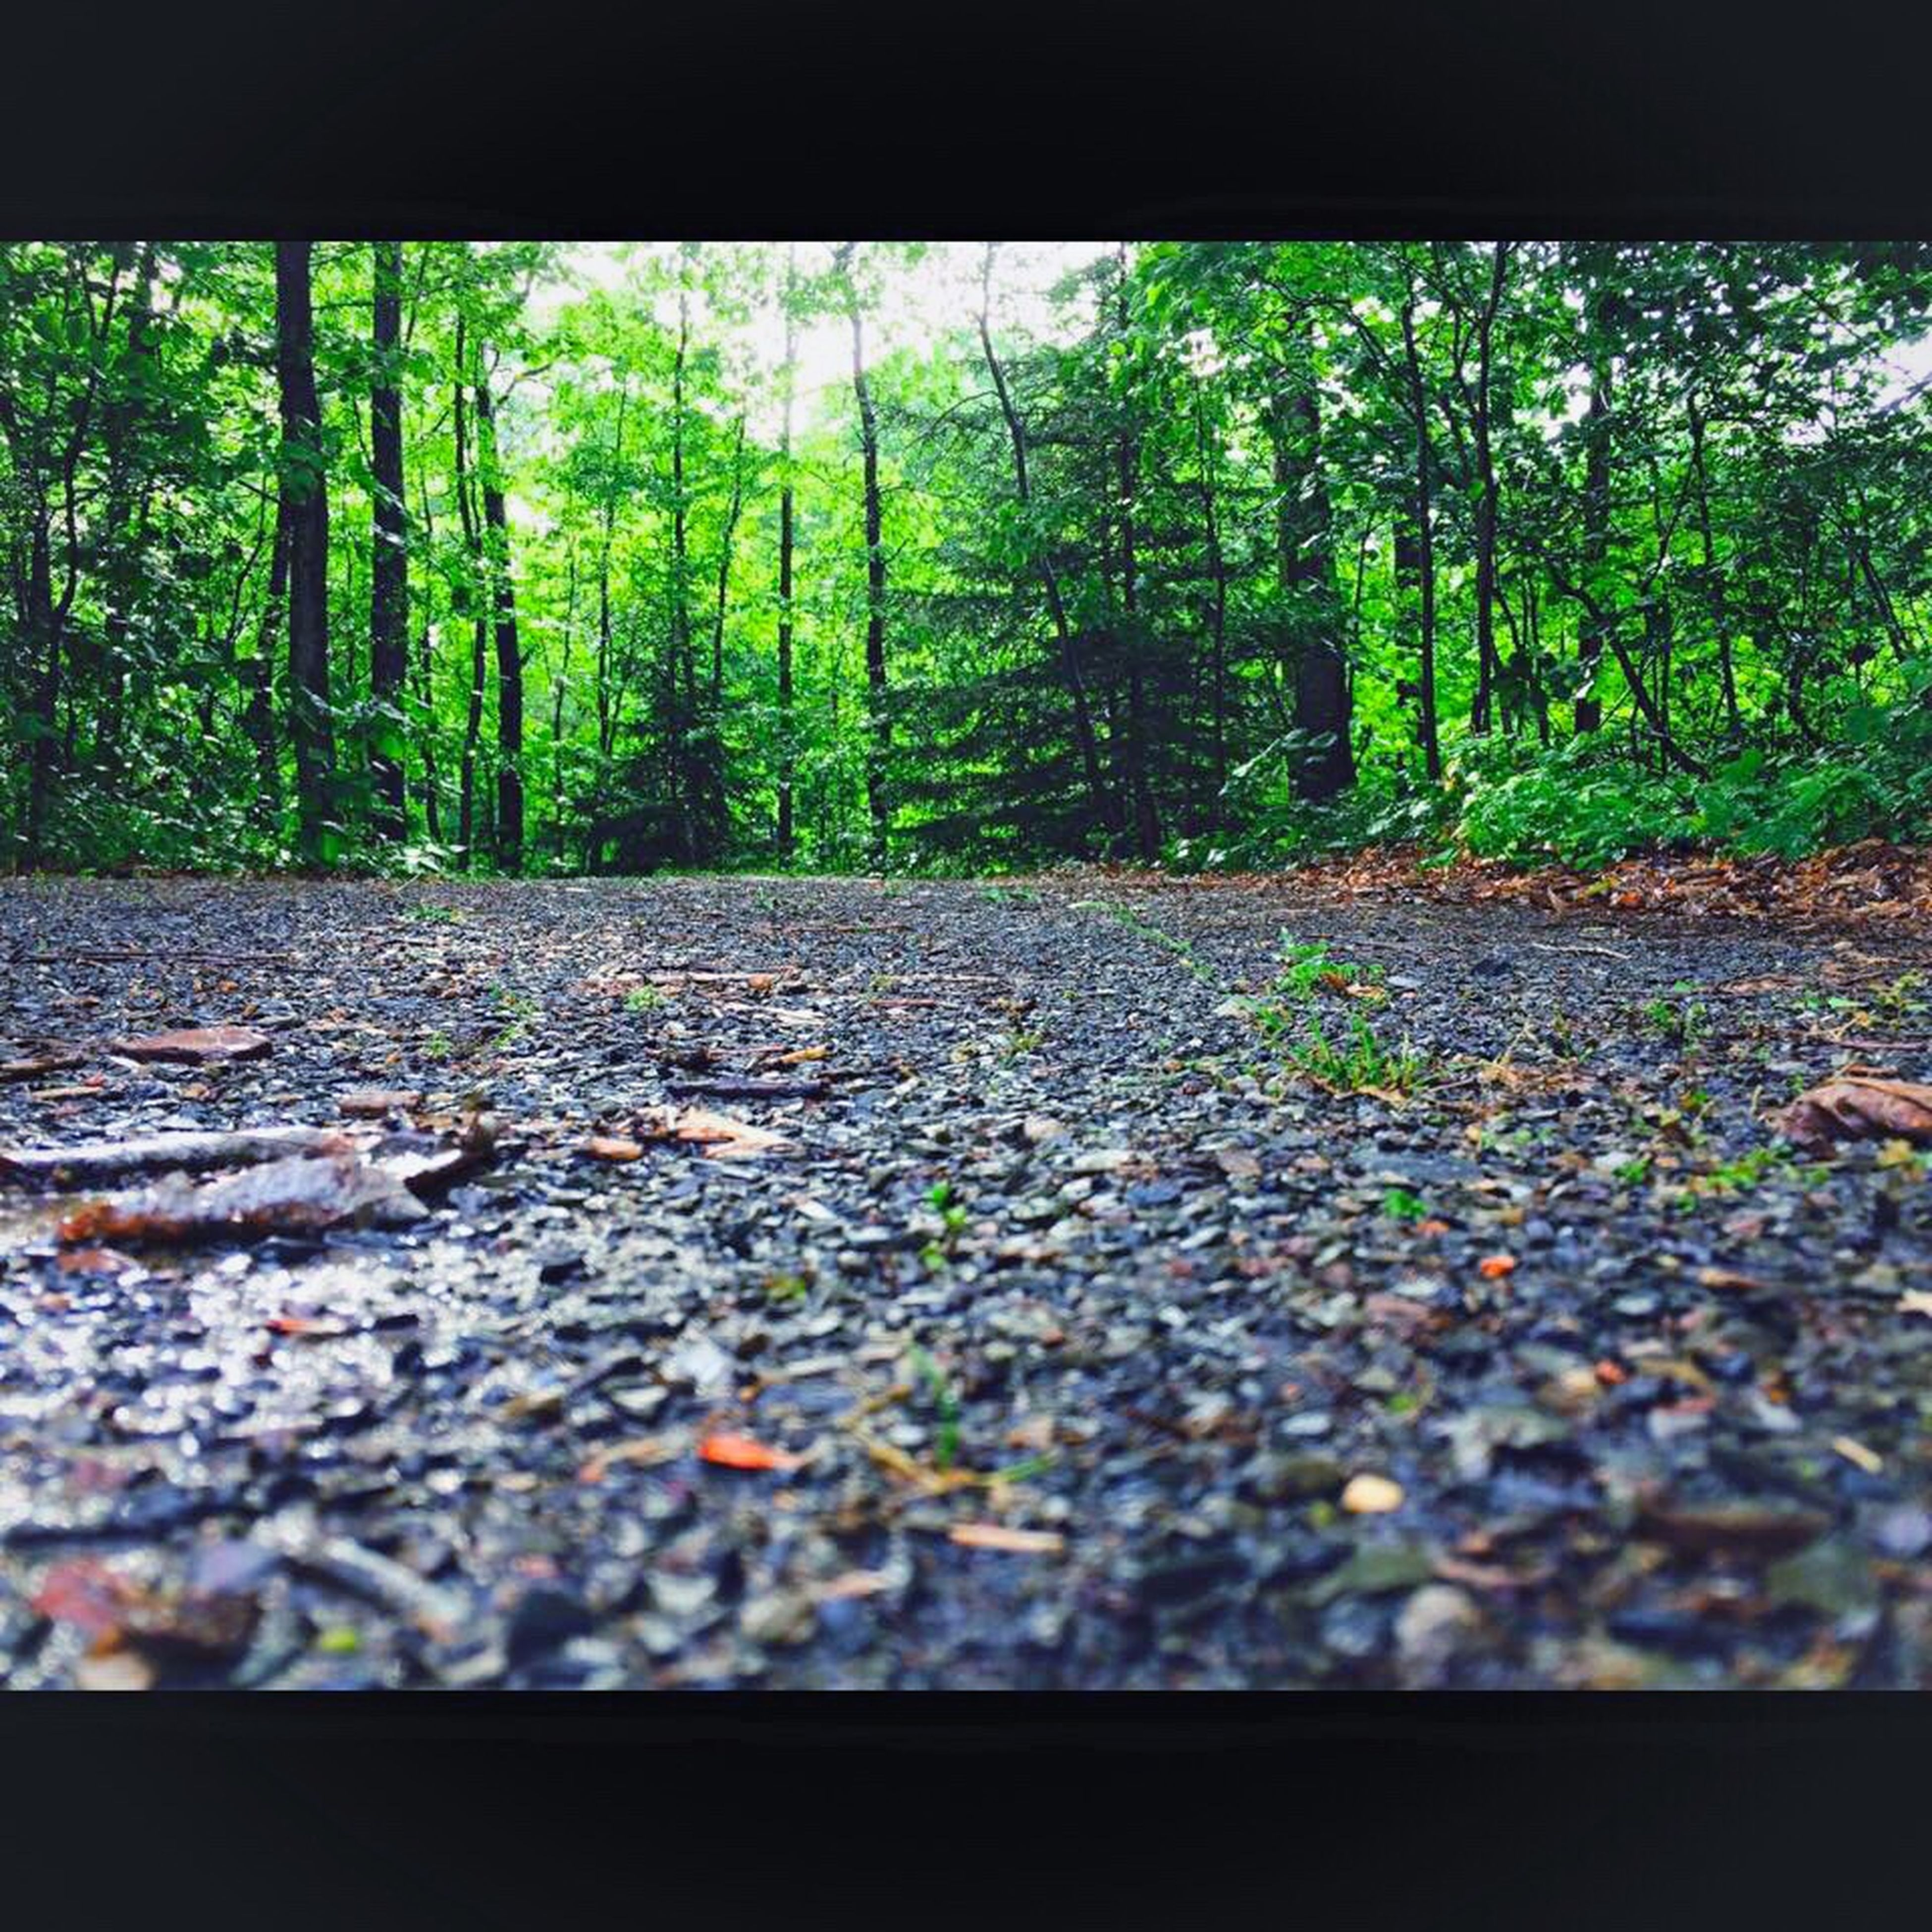 tree, the way forward, surface level, tranquility, growth, diminishing perspective, transportation, nature, transfer print, auto post production filter, forest, vanishing point, leaf, selective focus, road, tranquil scene, day, plant, outdoors, no people